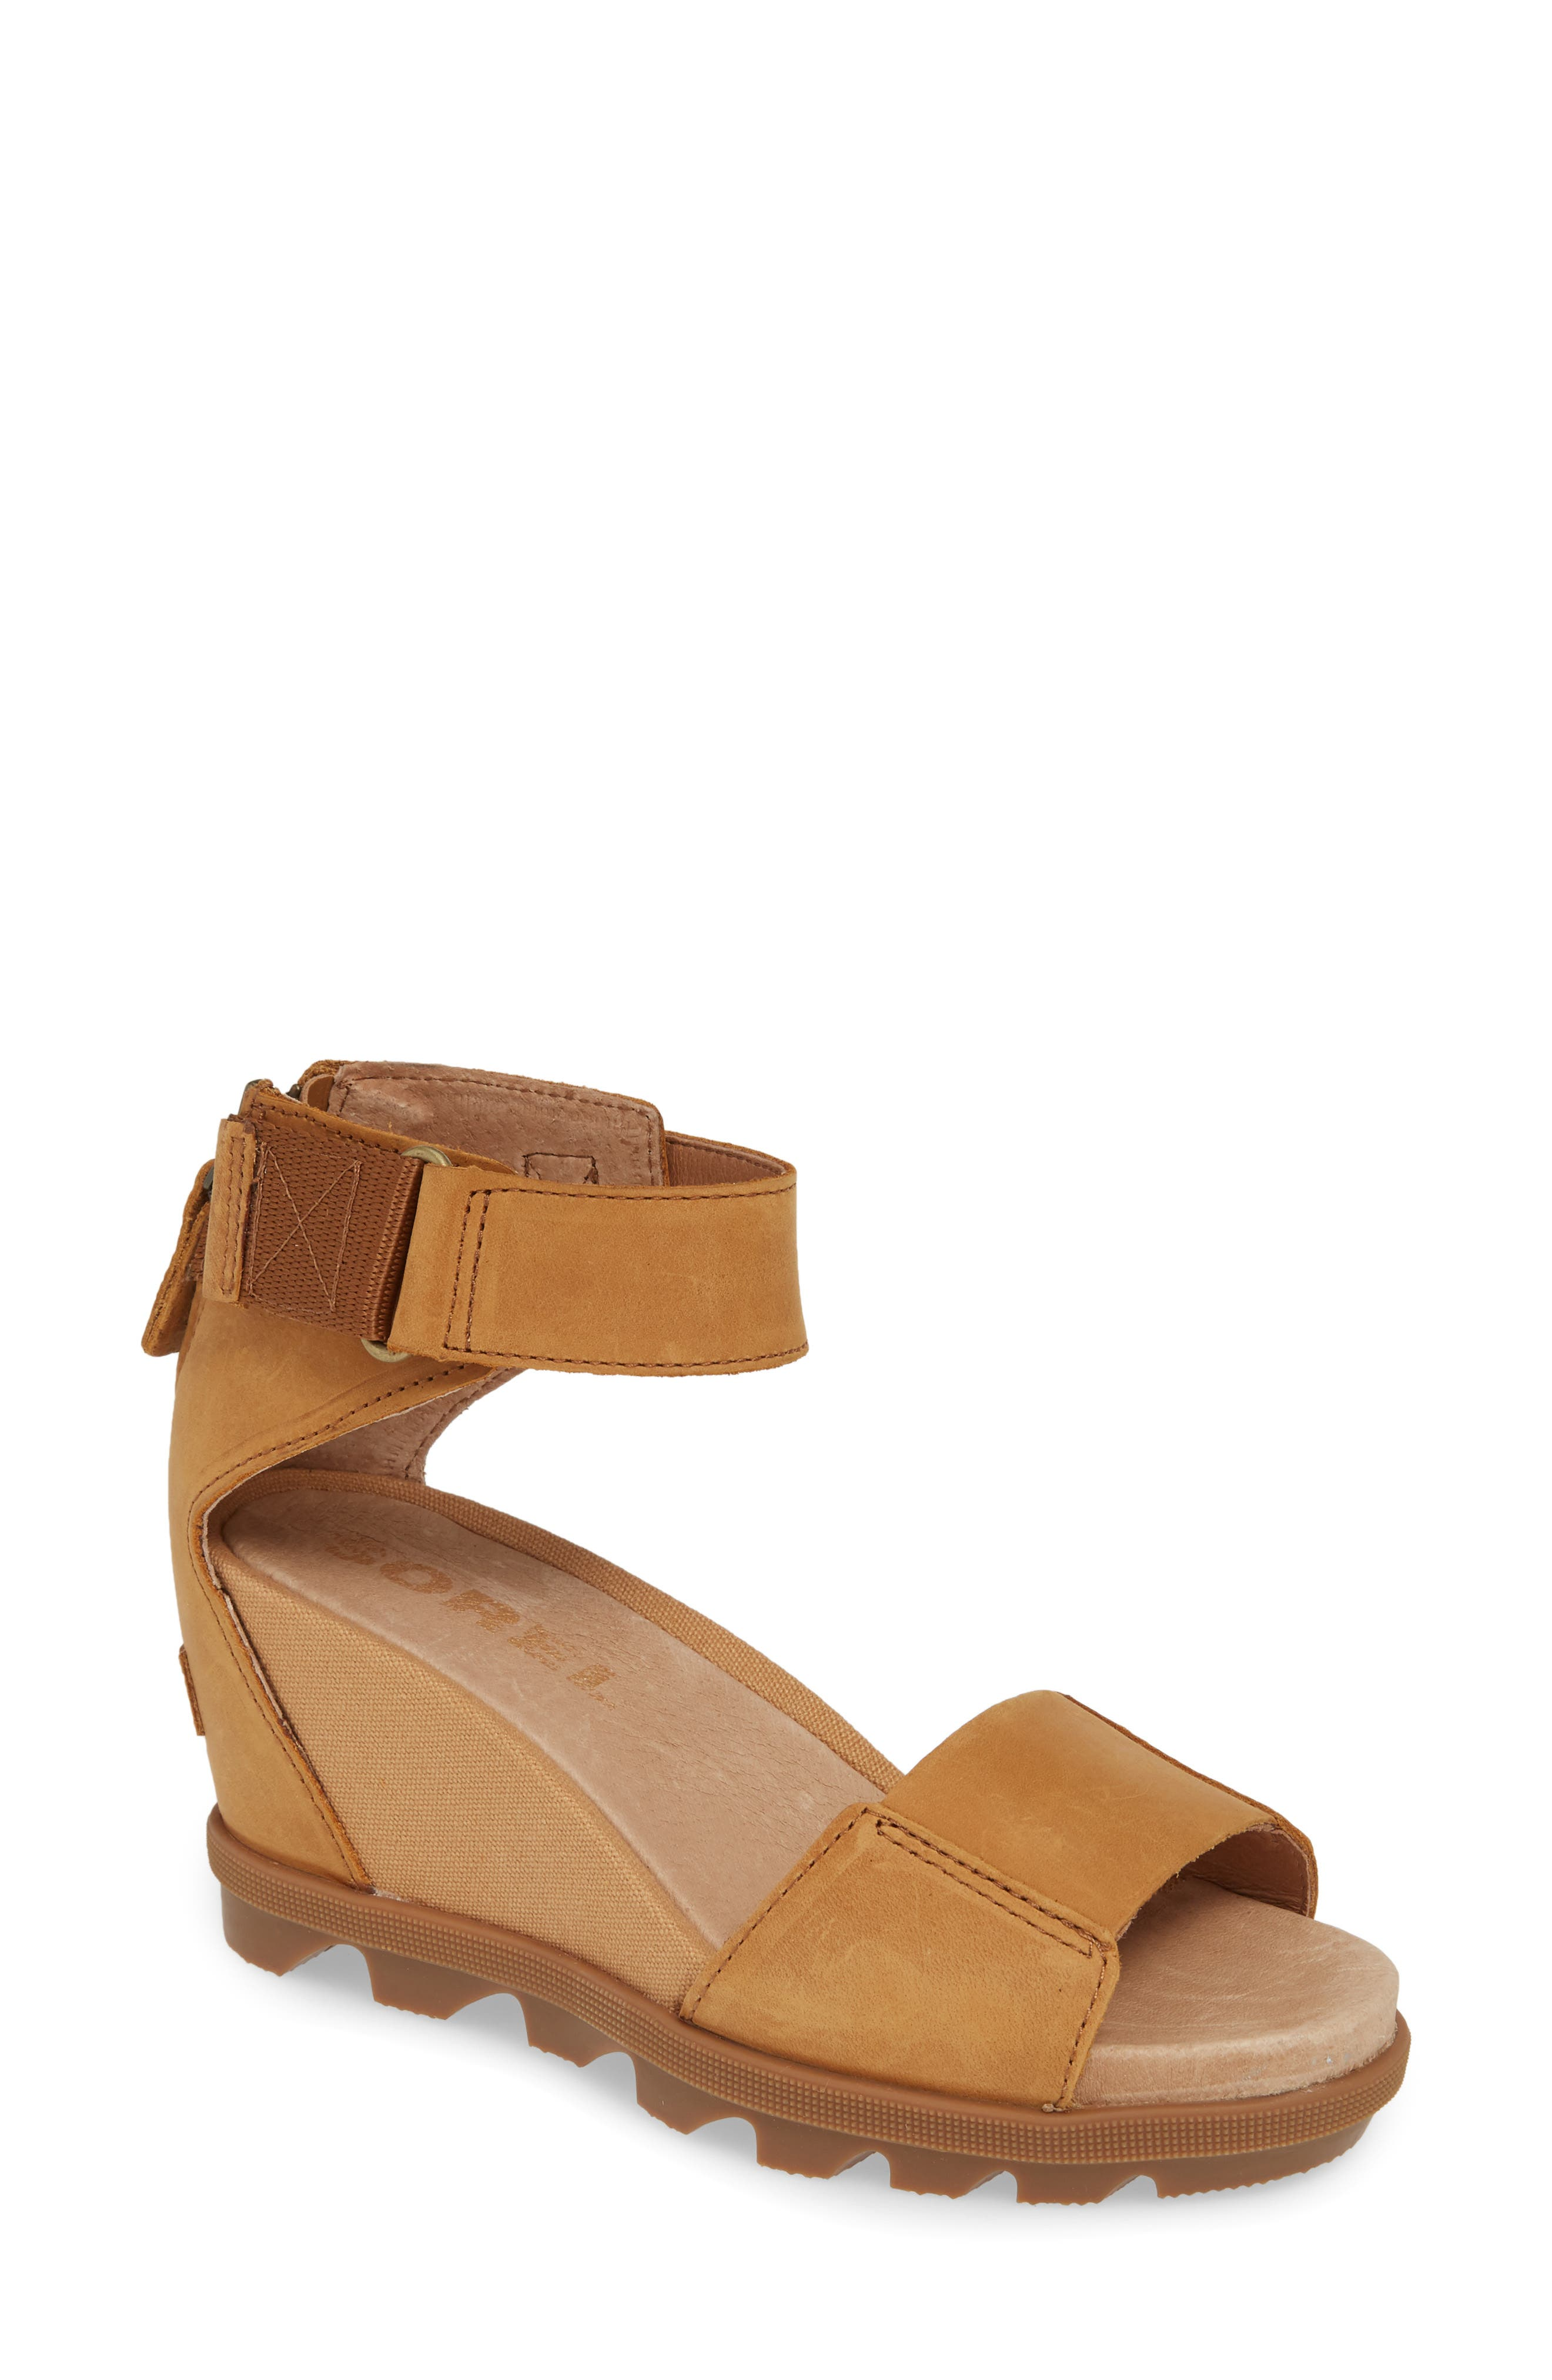 Sorel Joanie Ii Ankle Strap Wedge Sandal, Brown